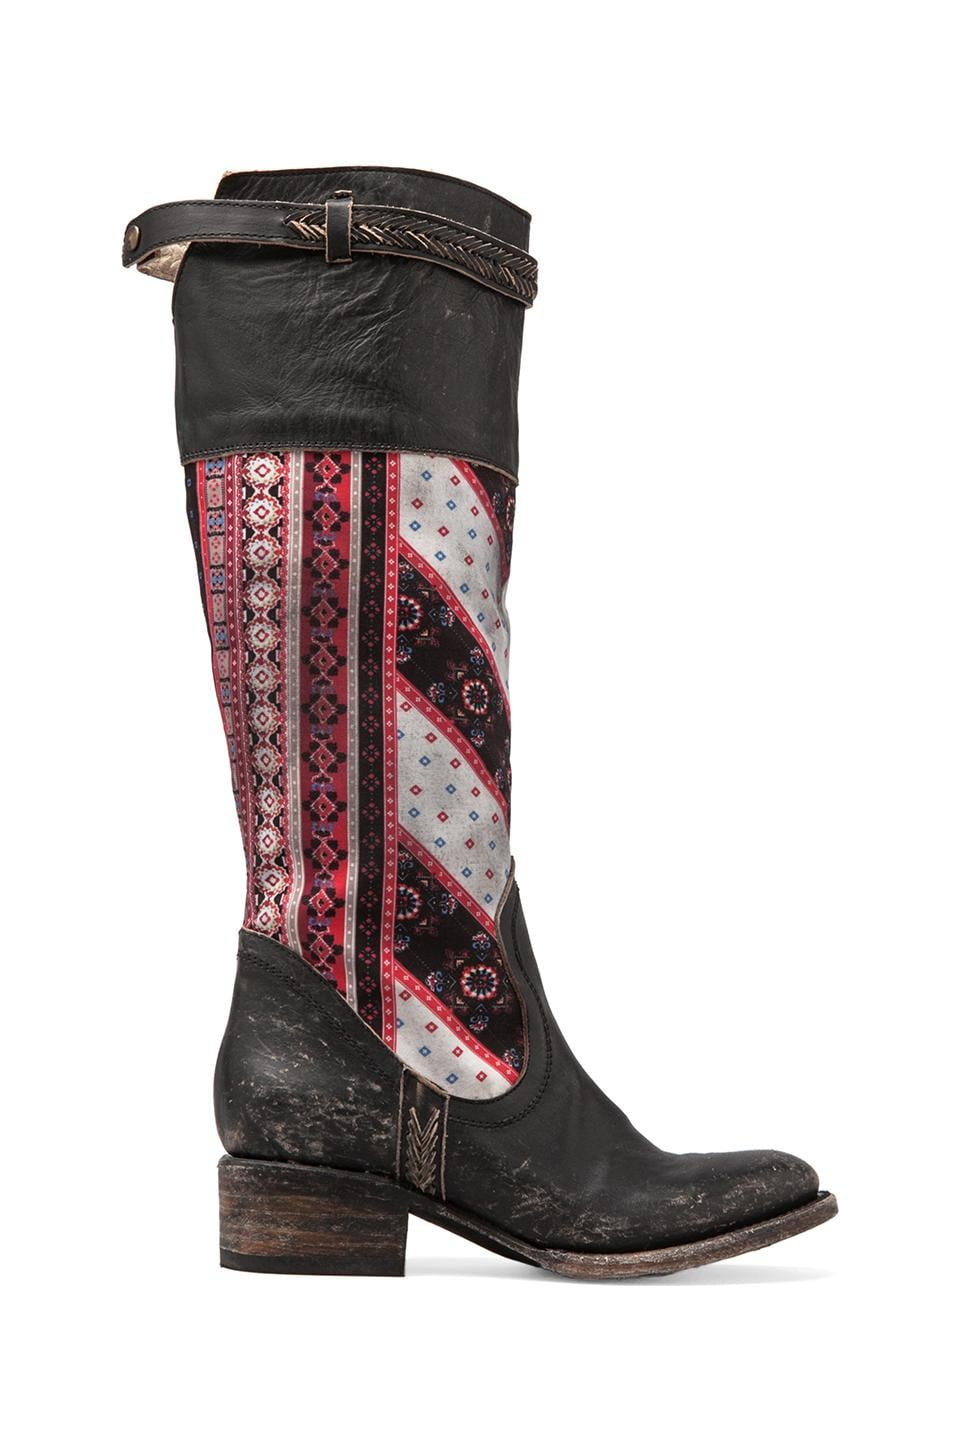 Freebird by Steven Sullivan Boot in Black